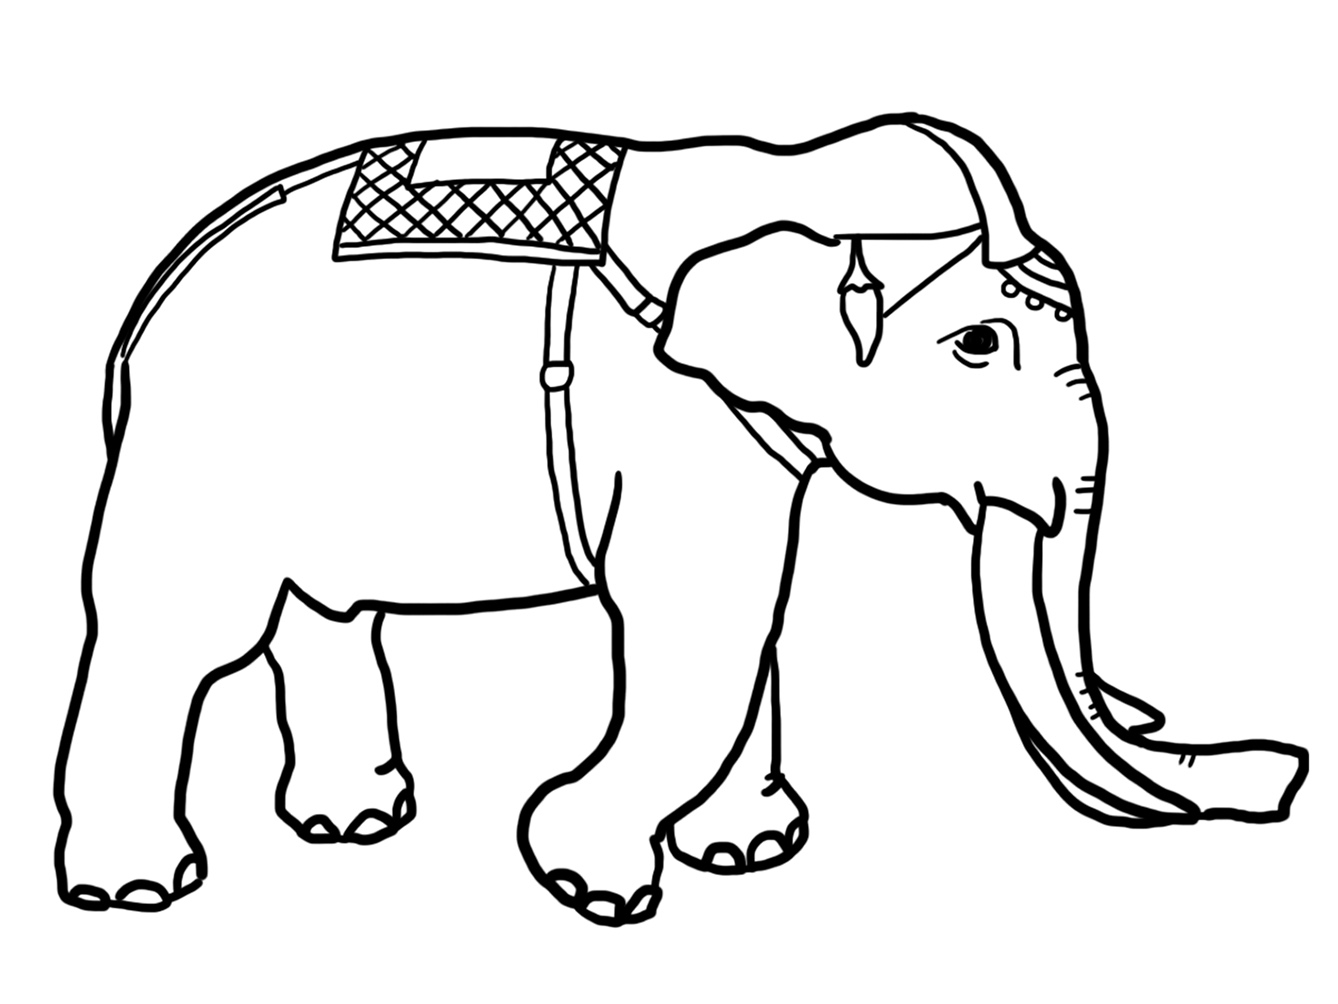 1338x1004 Funny Elephant Coloring Pages